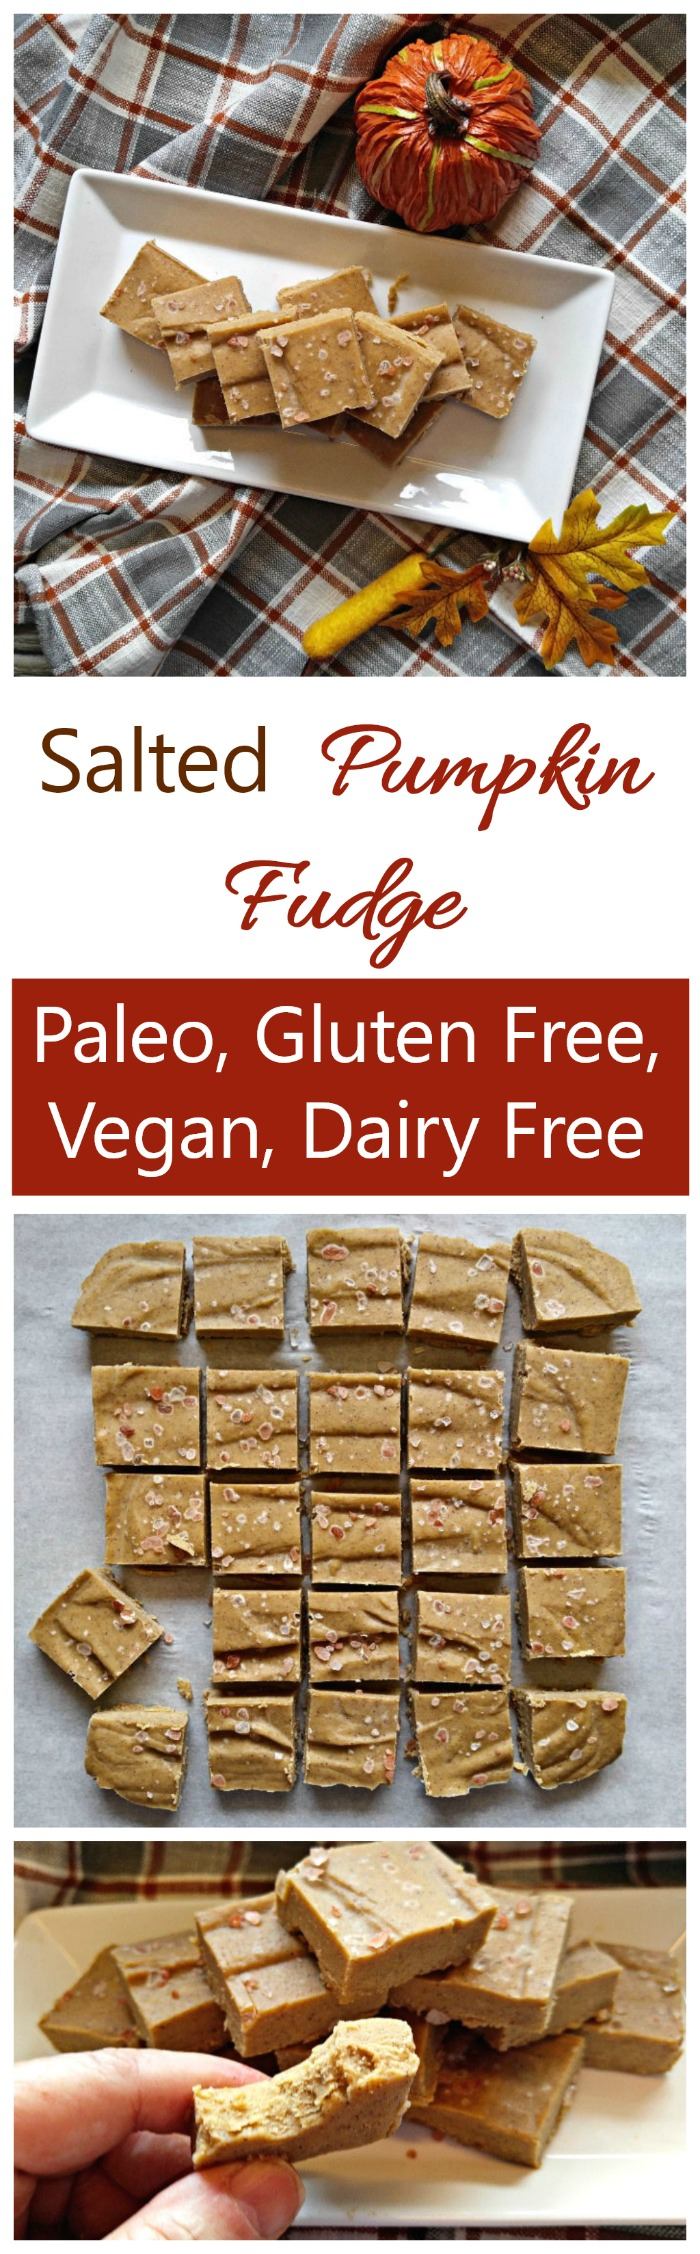 This Salted Pumpkin Fudge is creamy and tangy with the perfect consistency. It is #vegan, dairy free, soy free and #glutenfree. Clean eating at its best! #pumpkinfudge